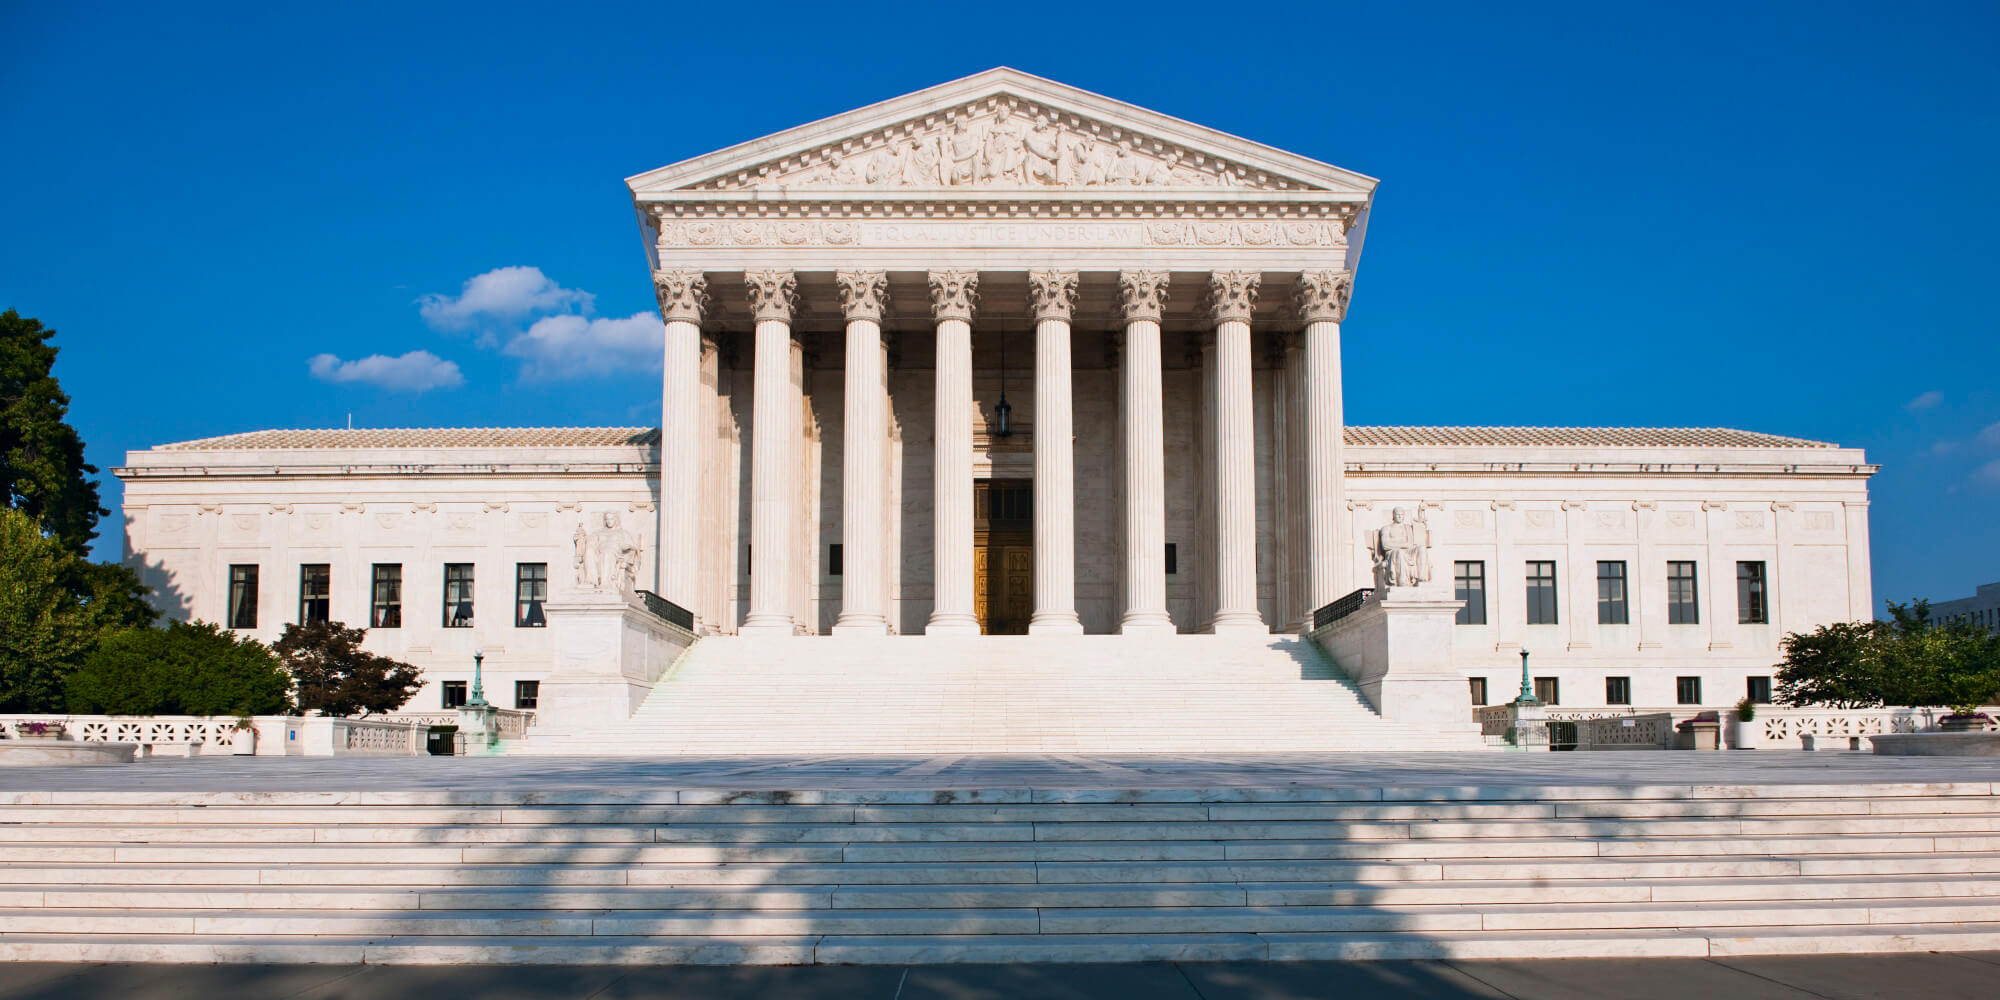 an introduction to judicial review of the supreme court in the united states We''ll talk about trial courts, district courts, appeals courts, circuit courts, state supreme courts, and of course the one at the top - the us supreme court.